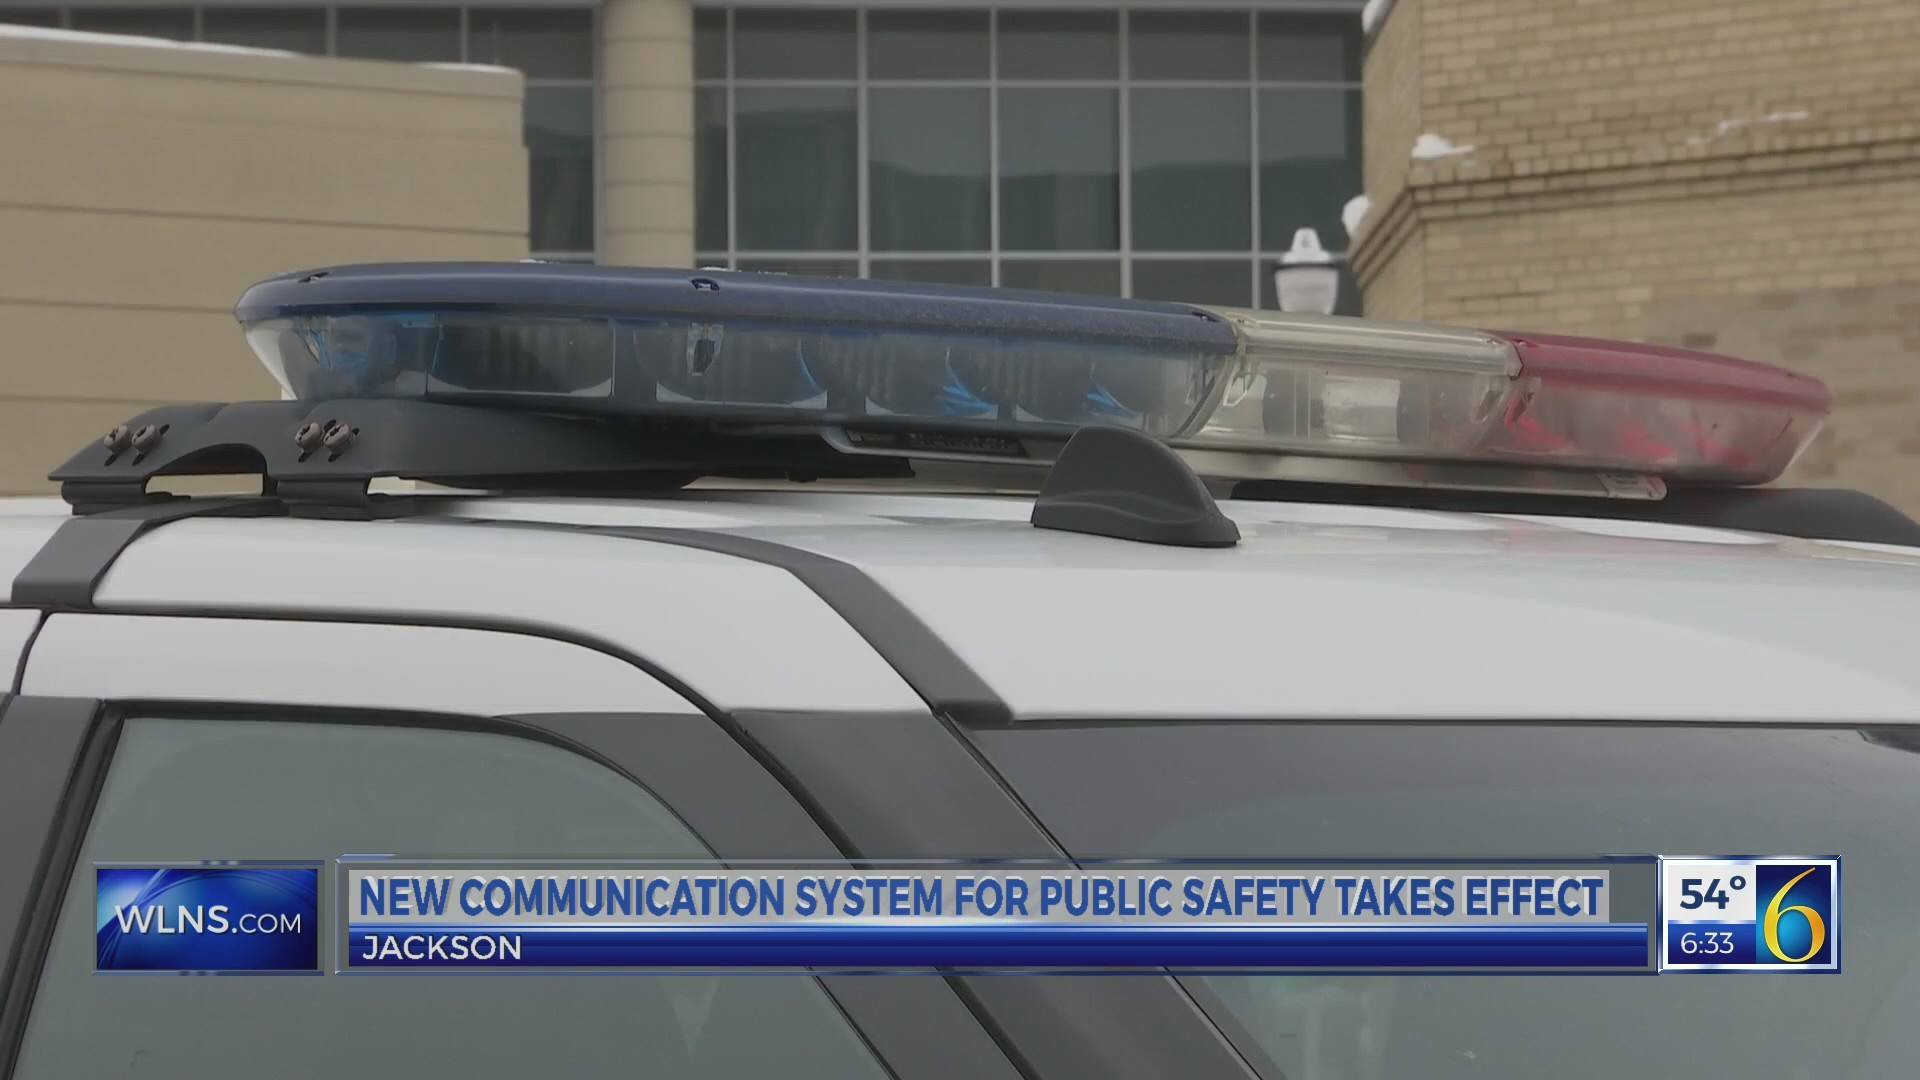 This Morning: Jackson communications system